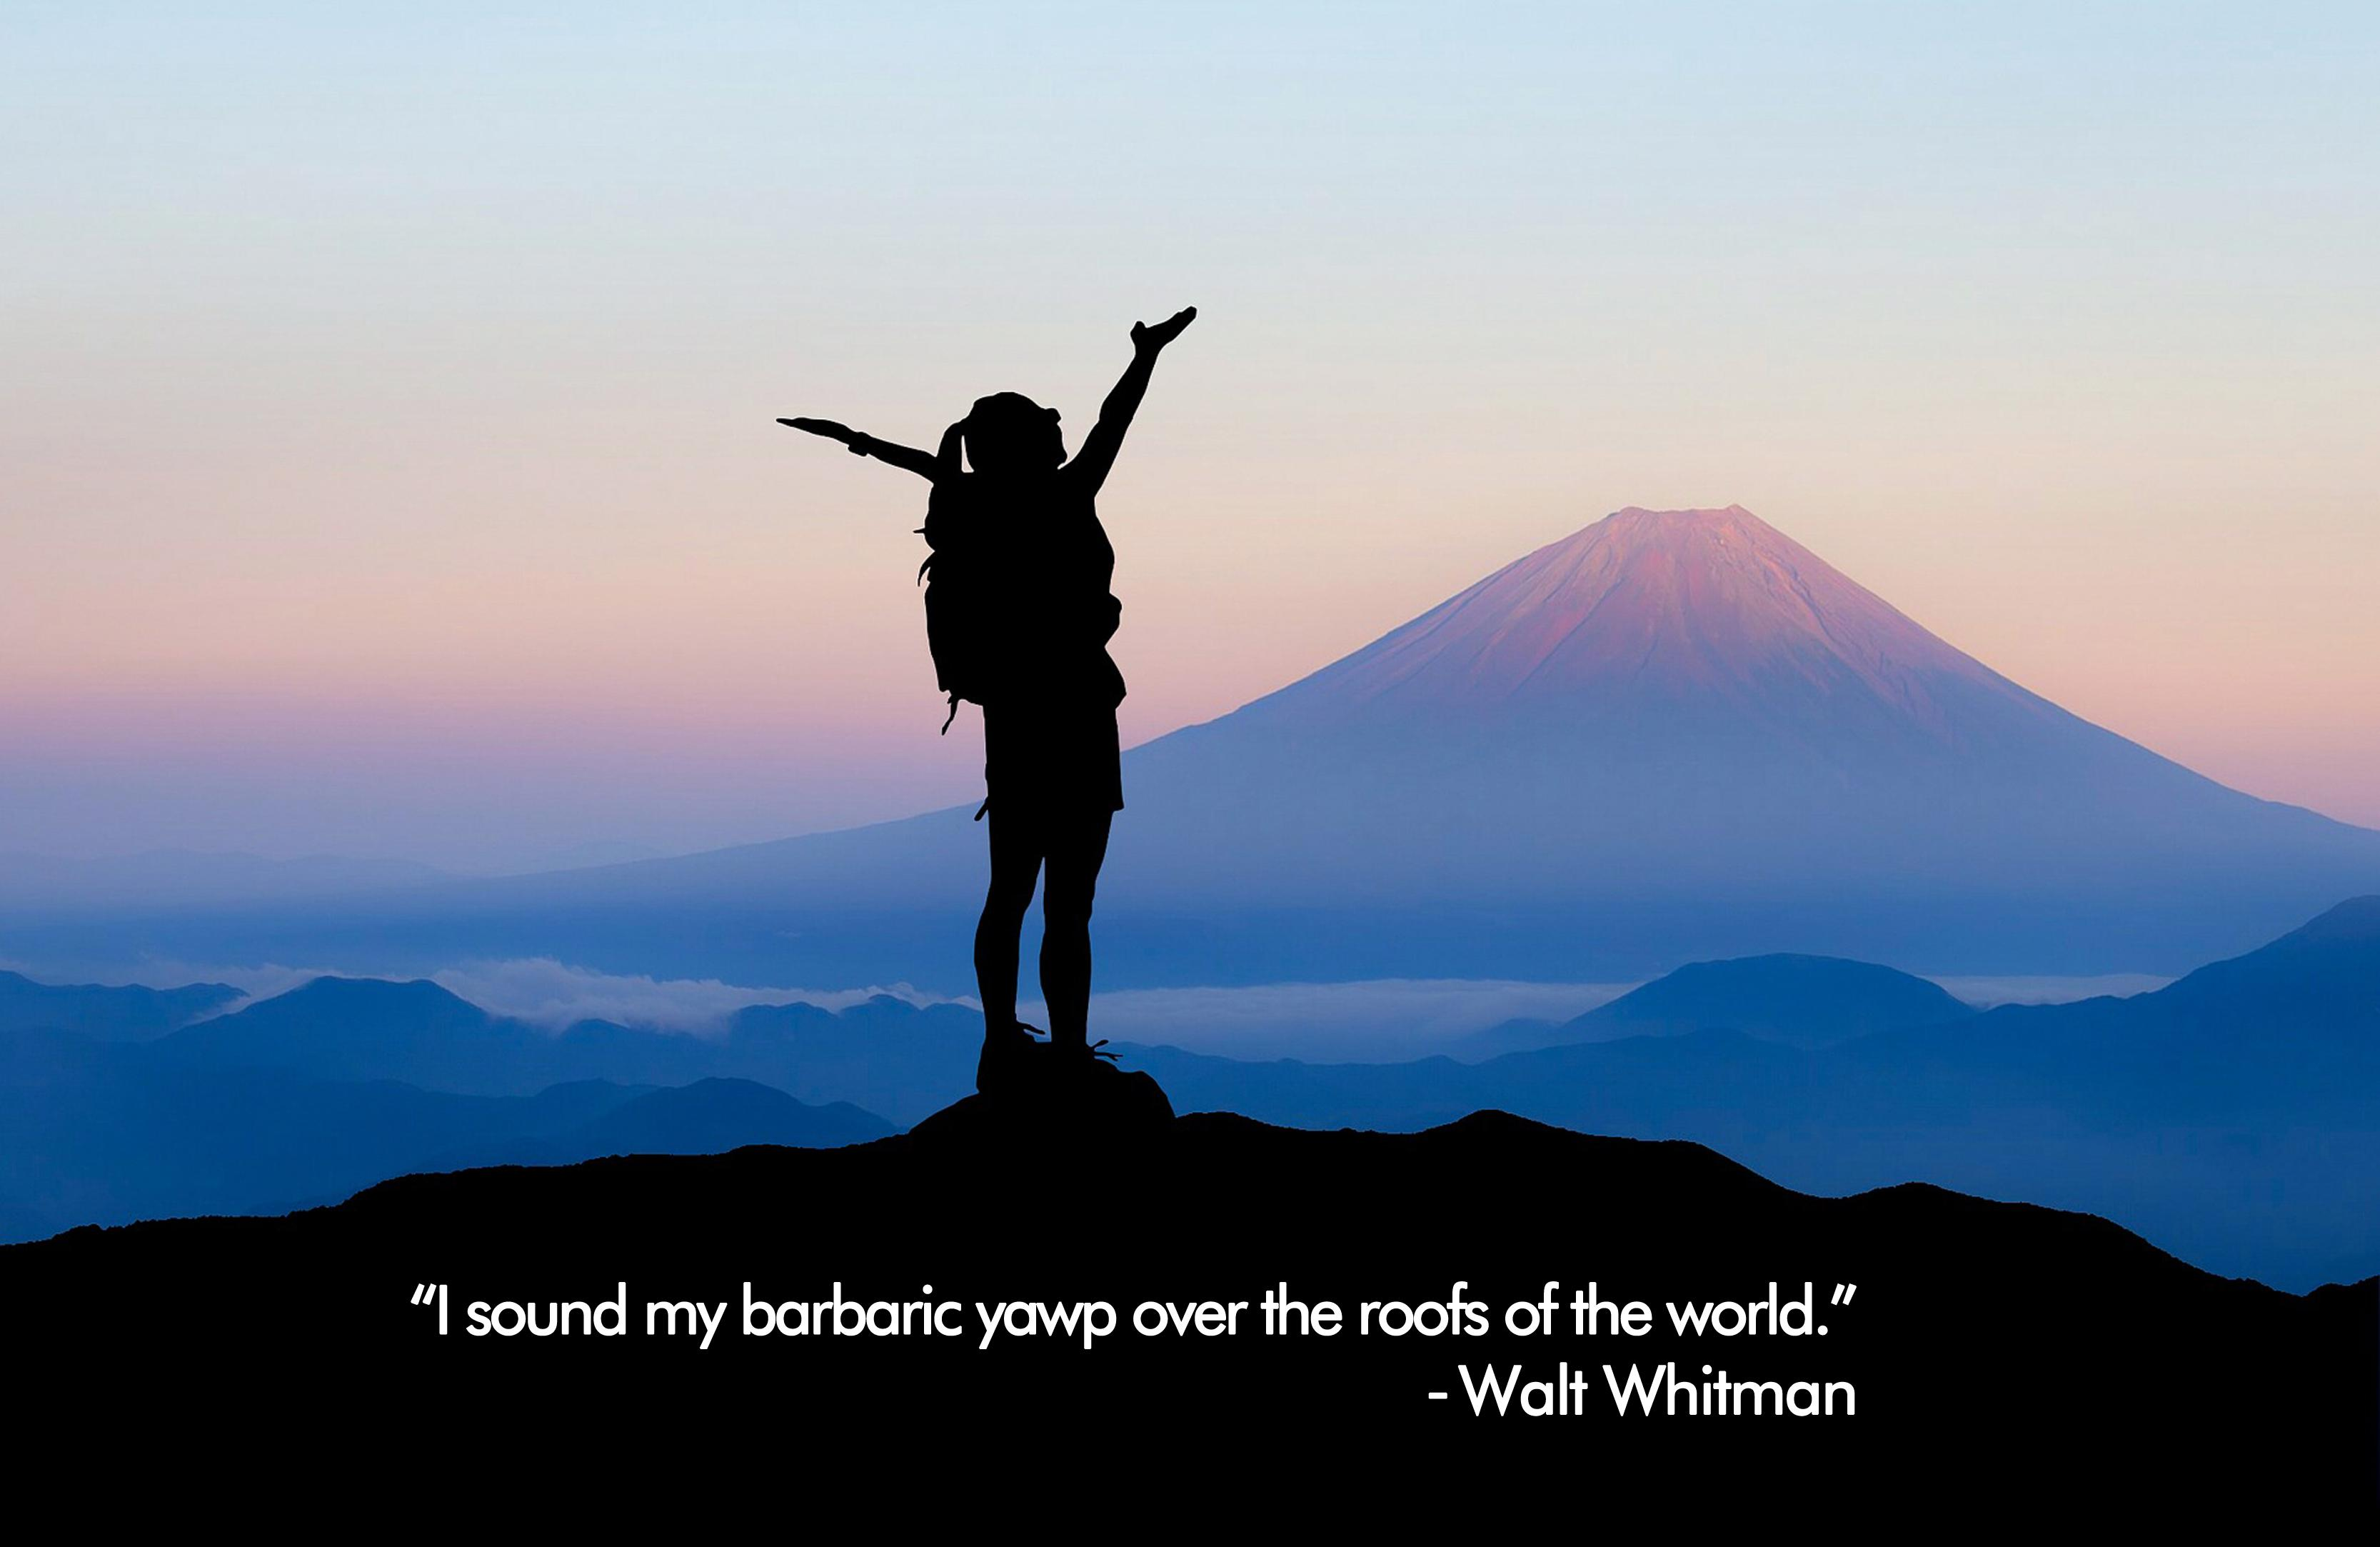 """""""I sound my barbaric yawp over the roofs of the world."""" -Walt Whitman [3333 x 2166p]"""